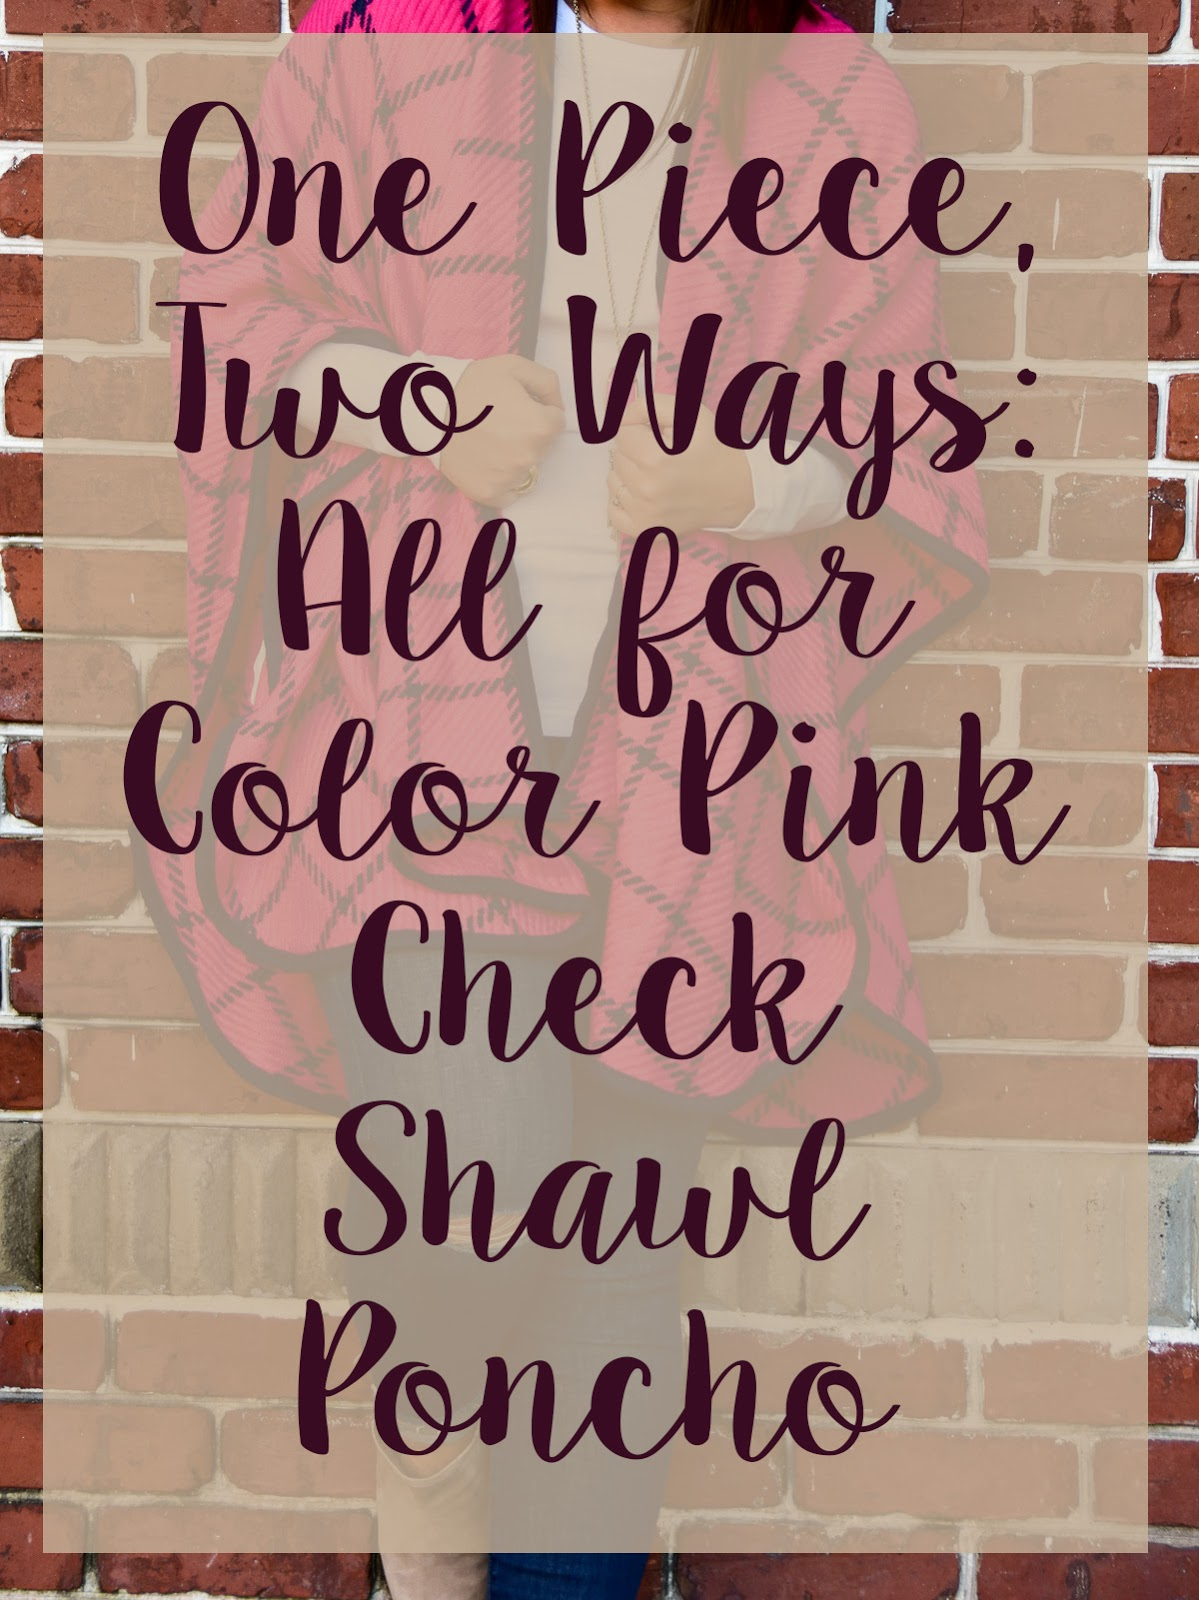 One Piece: Two Ways {All For Color Pink Poncho}